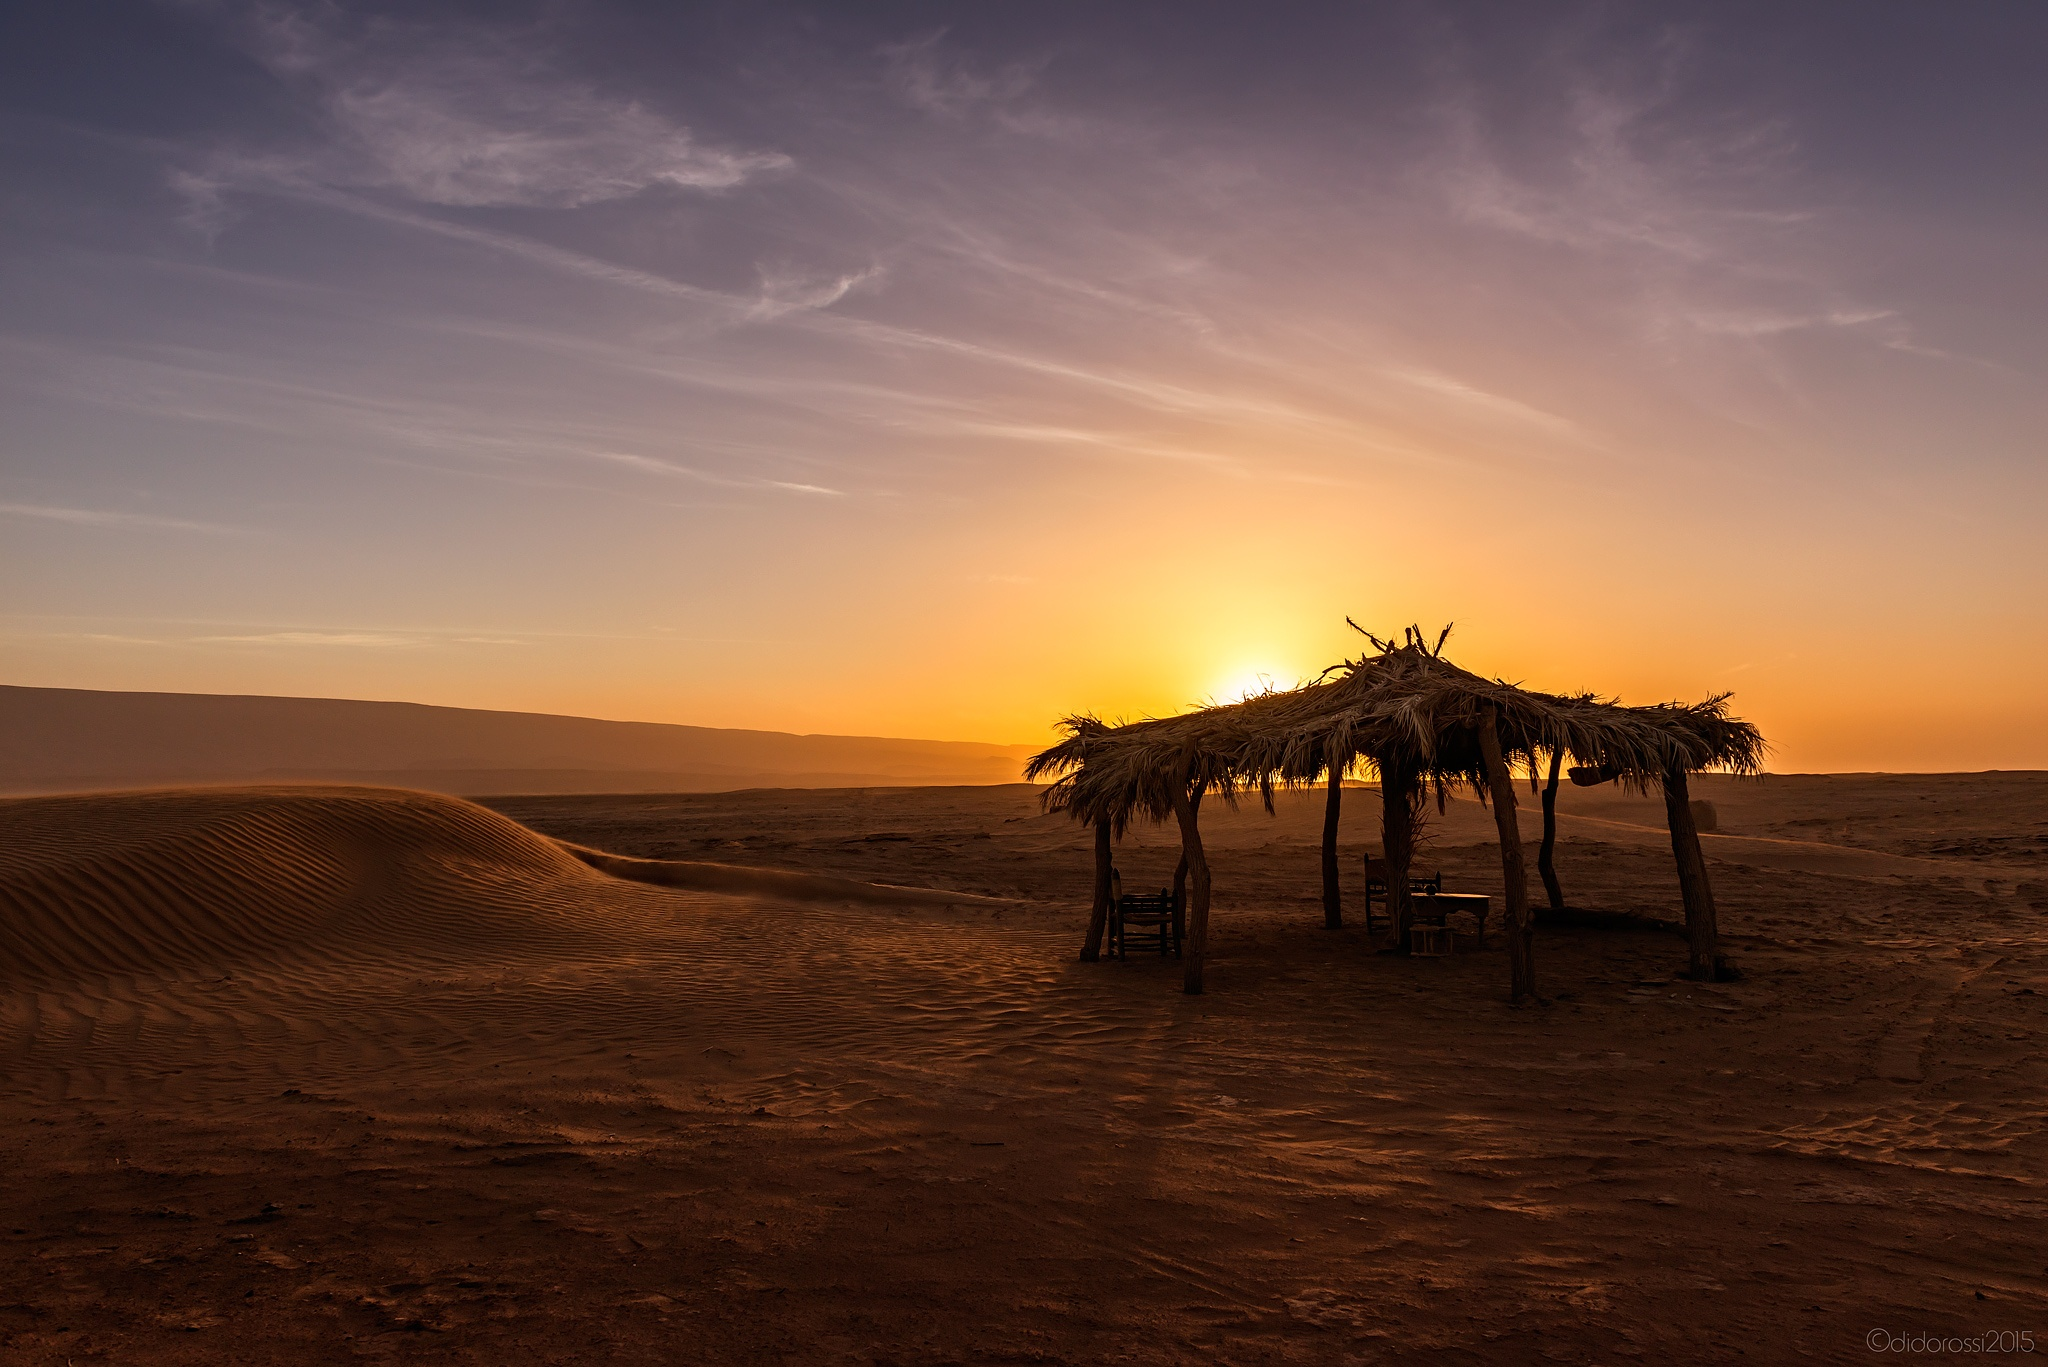 A tea in desert by didorossi